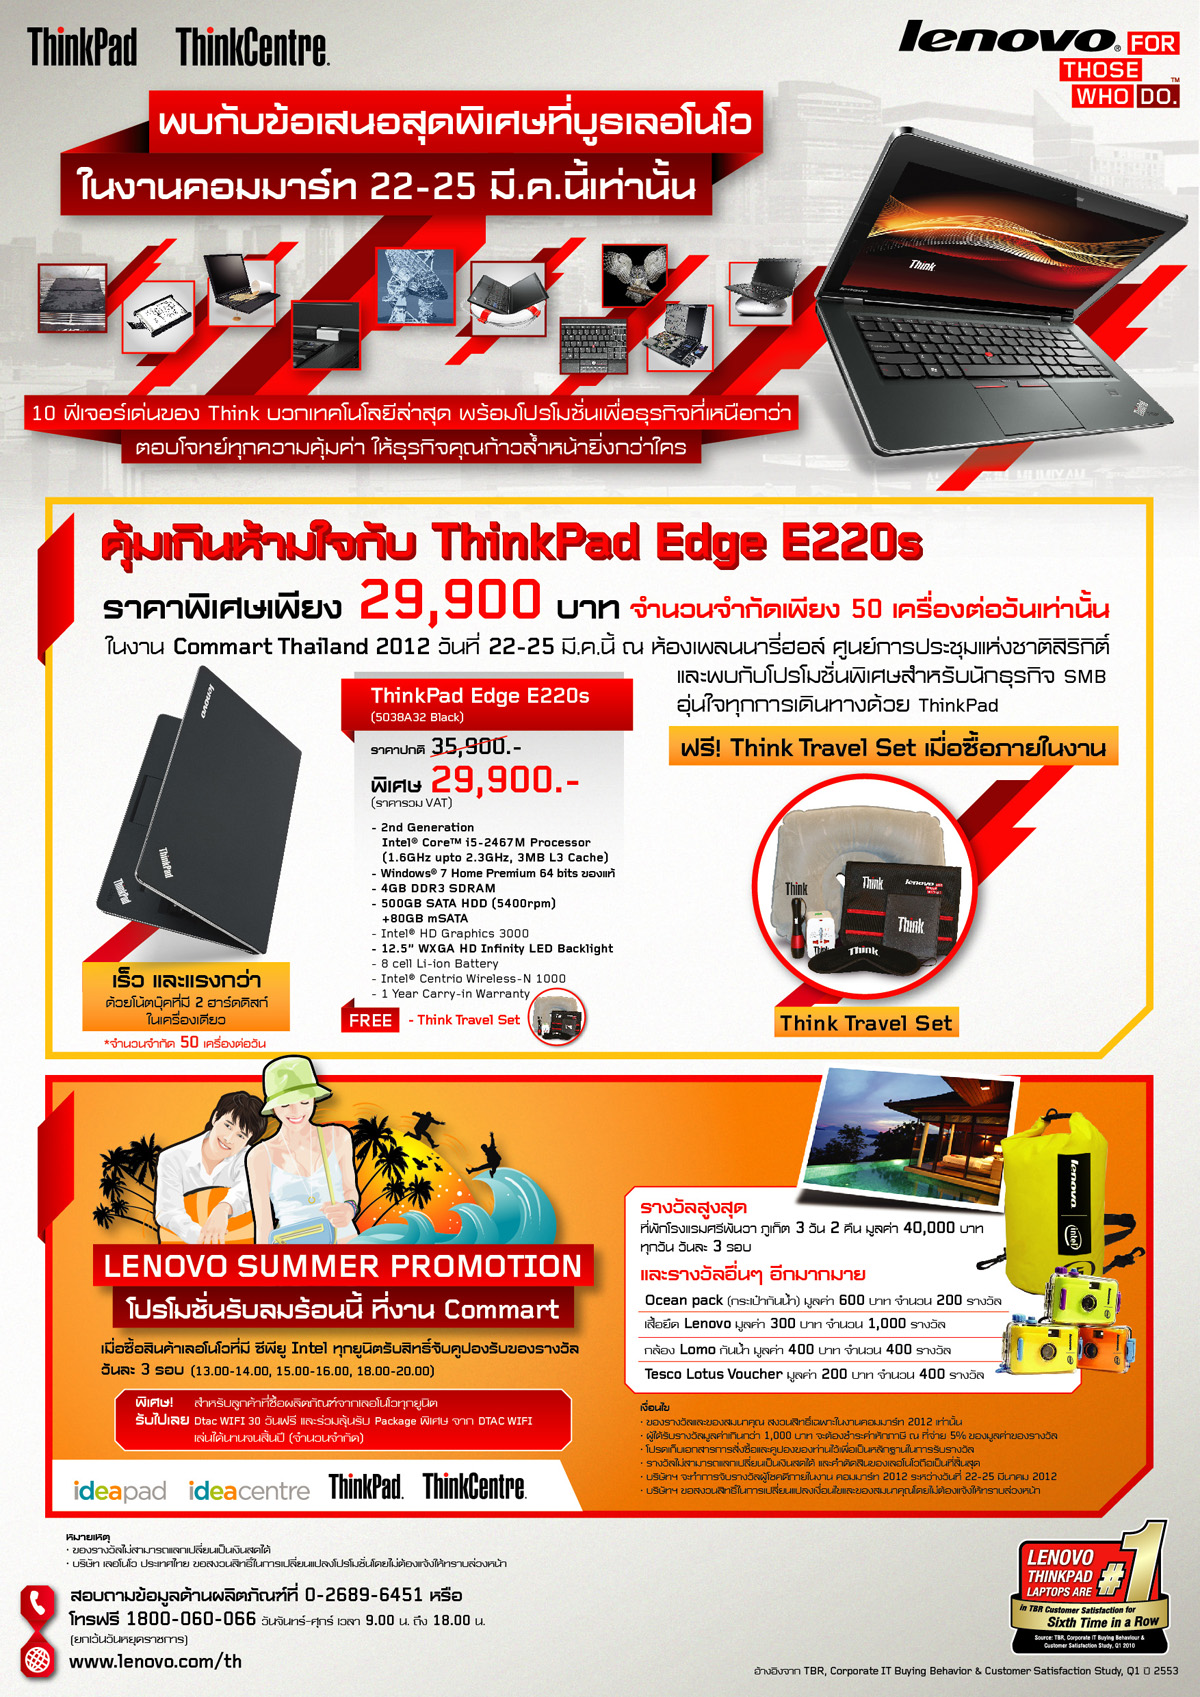 AW Lenovo ThinkPad Promotion for Commart March 2012 Leaflet A3 Front 01